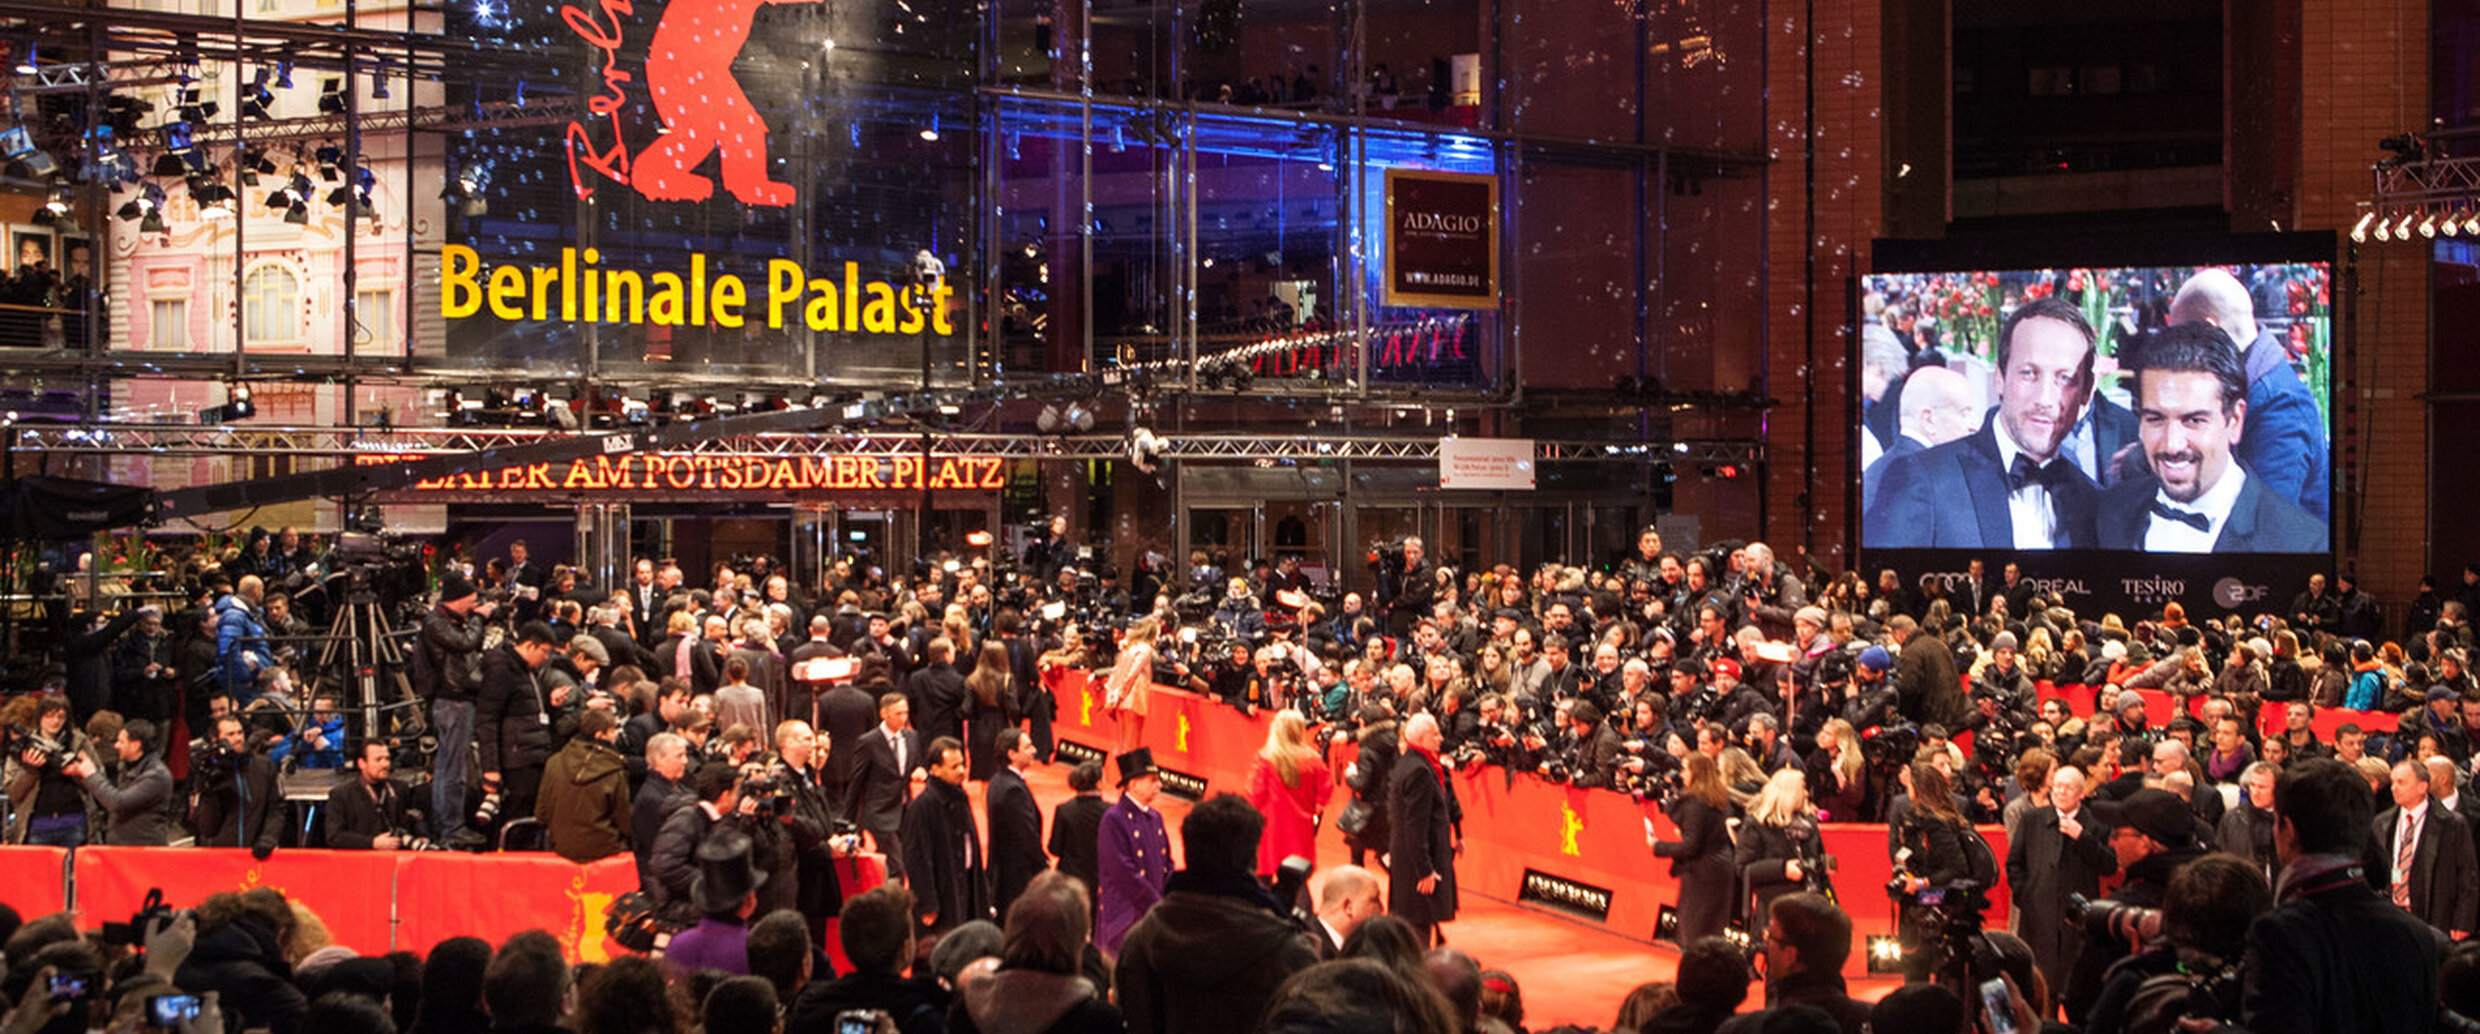 berlinale 2019 tickets